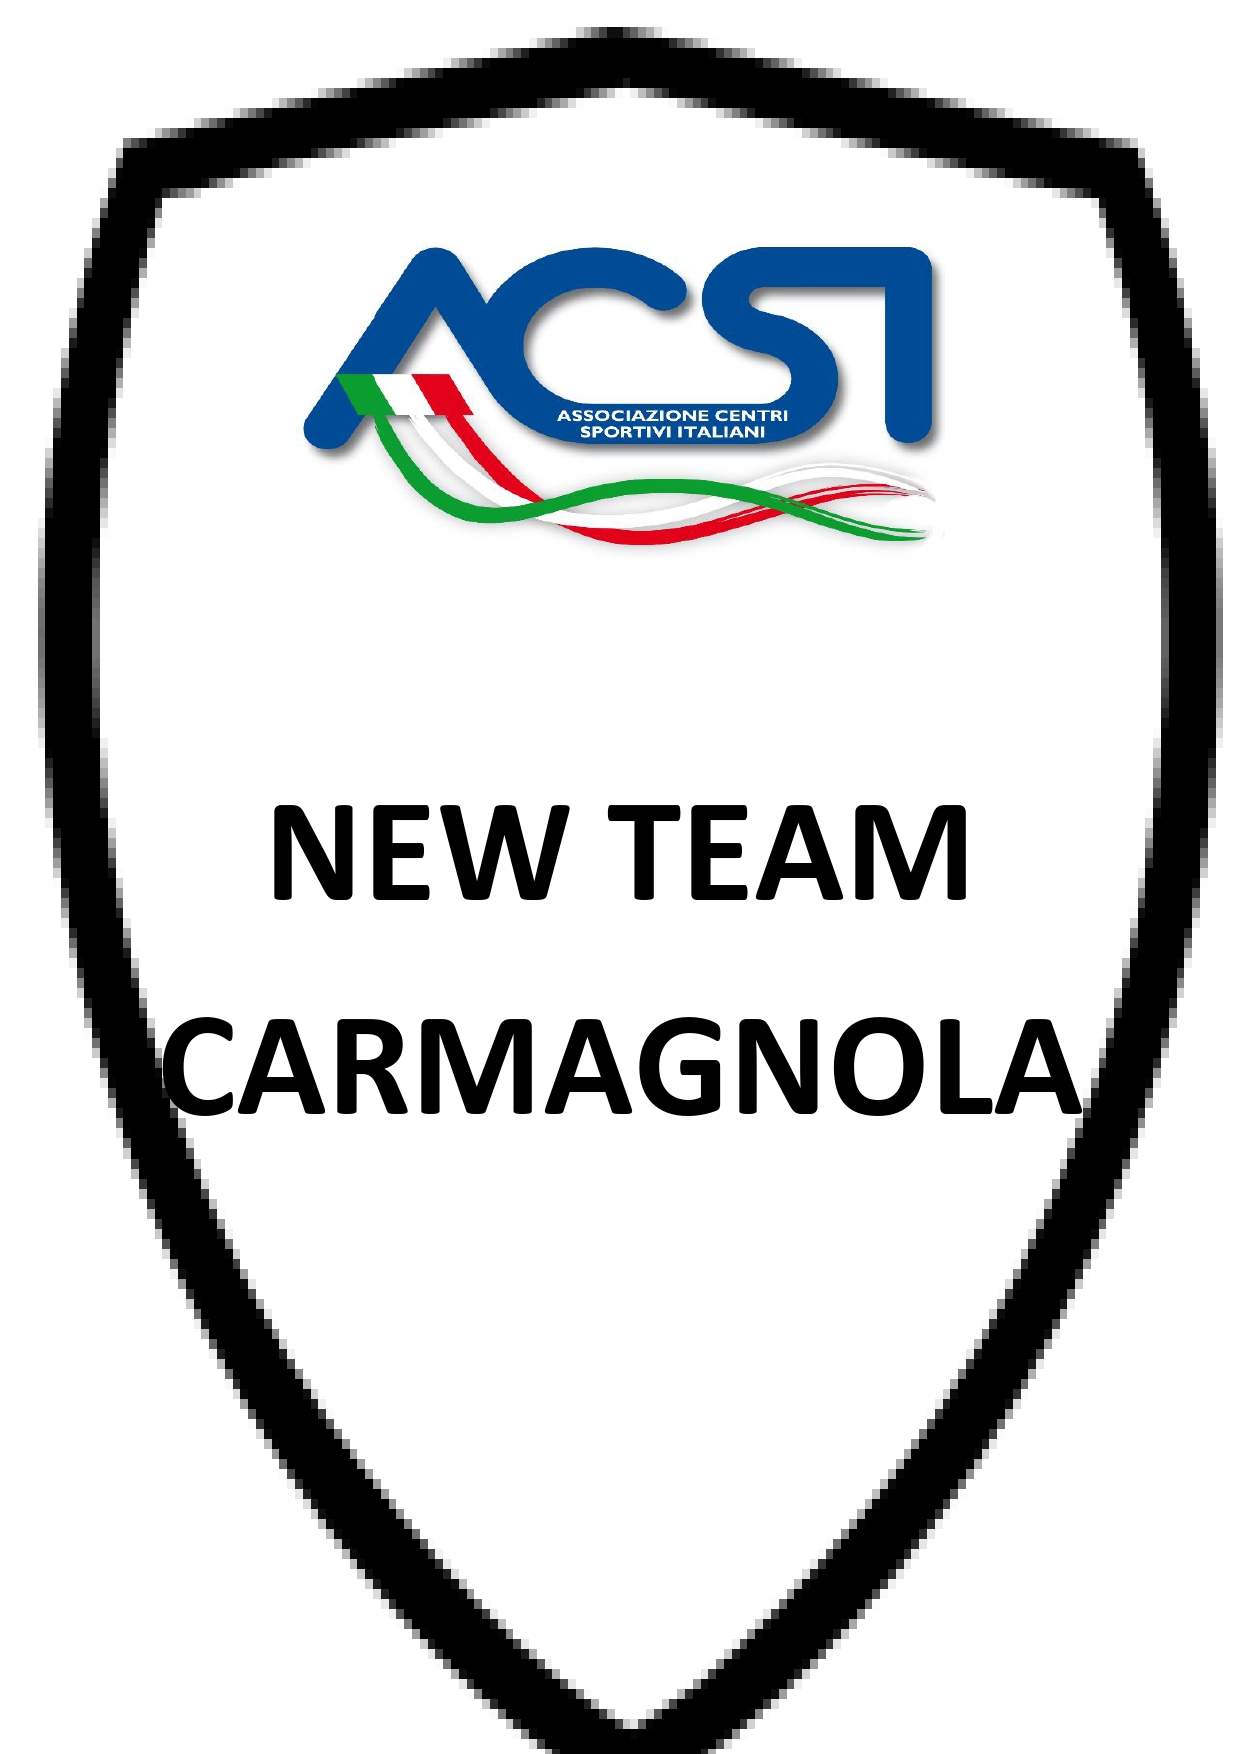 NEW TEAM CARMAGNOLA